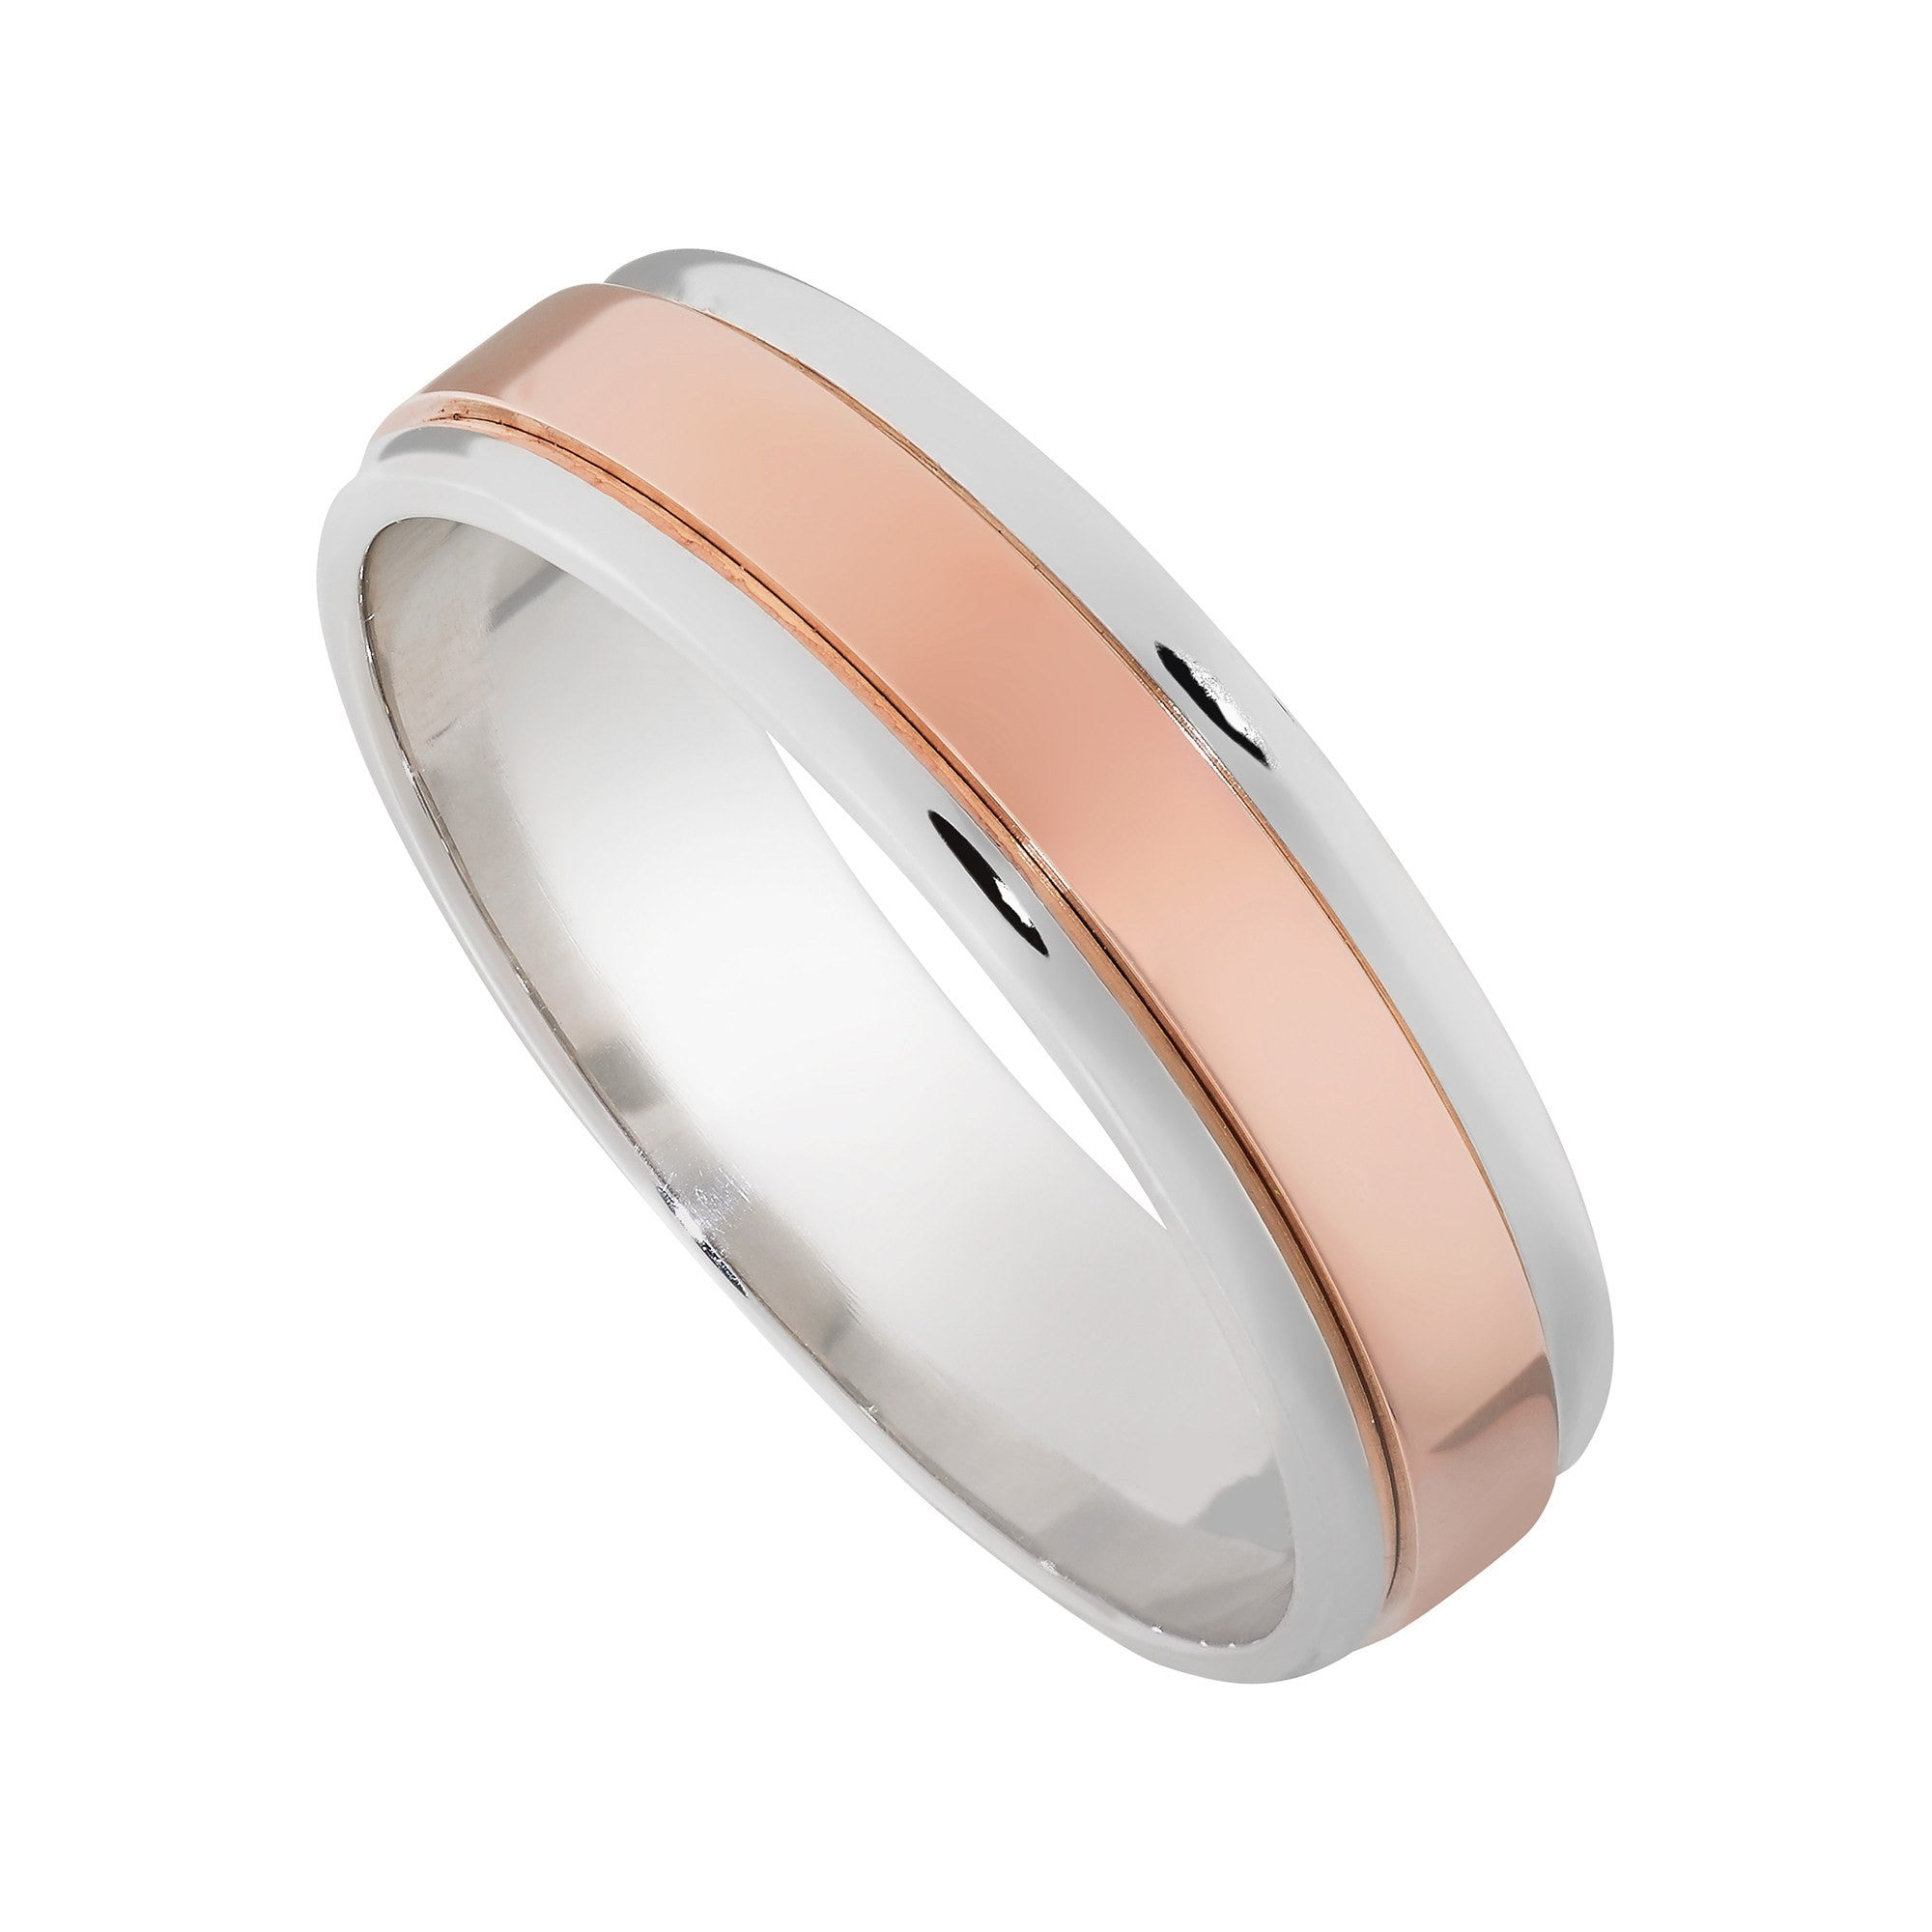 products jewellery diamond ring symbol gold bands ambra rosegold eternity wedding rose infinity band stack